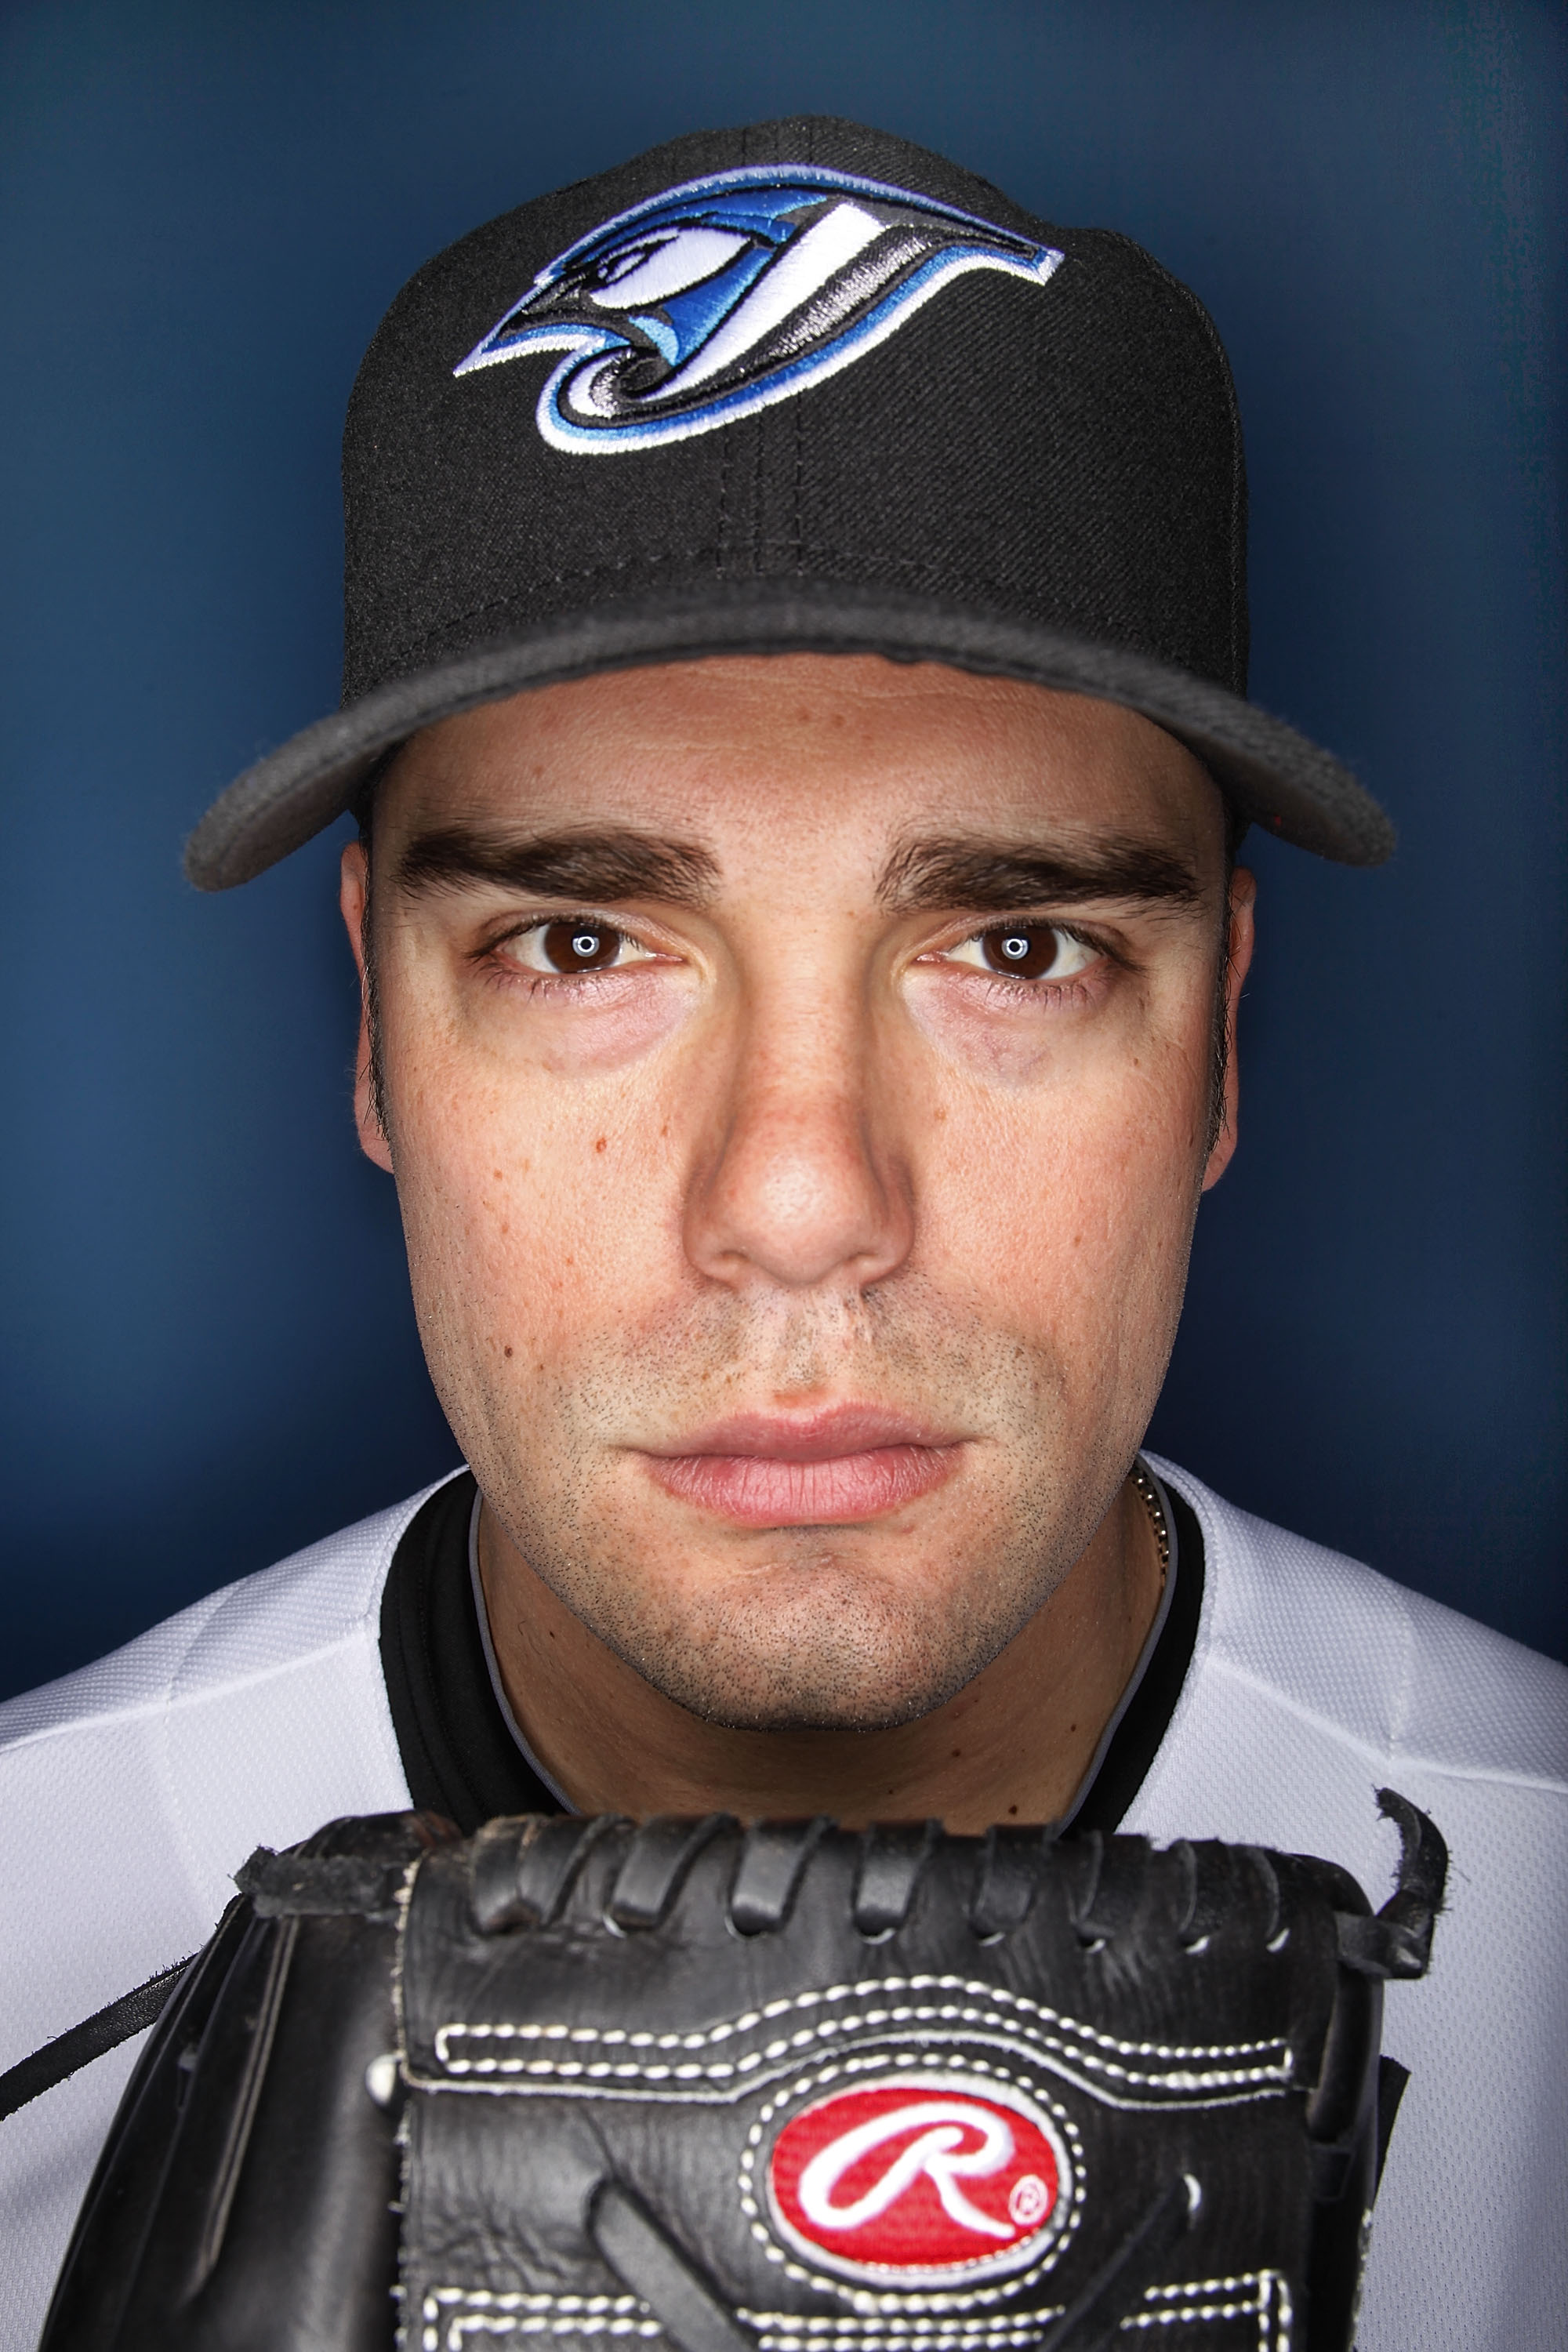 DUNEDIN, FL - MARCH 01:  Kevin Gregg #63 of the Toronto Blue Jays poses for photos during media day  on March 1, 2010 in Dunedin, Florida.  (Photo by Marc Serota/Getty Images)